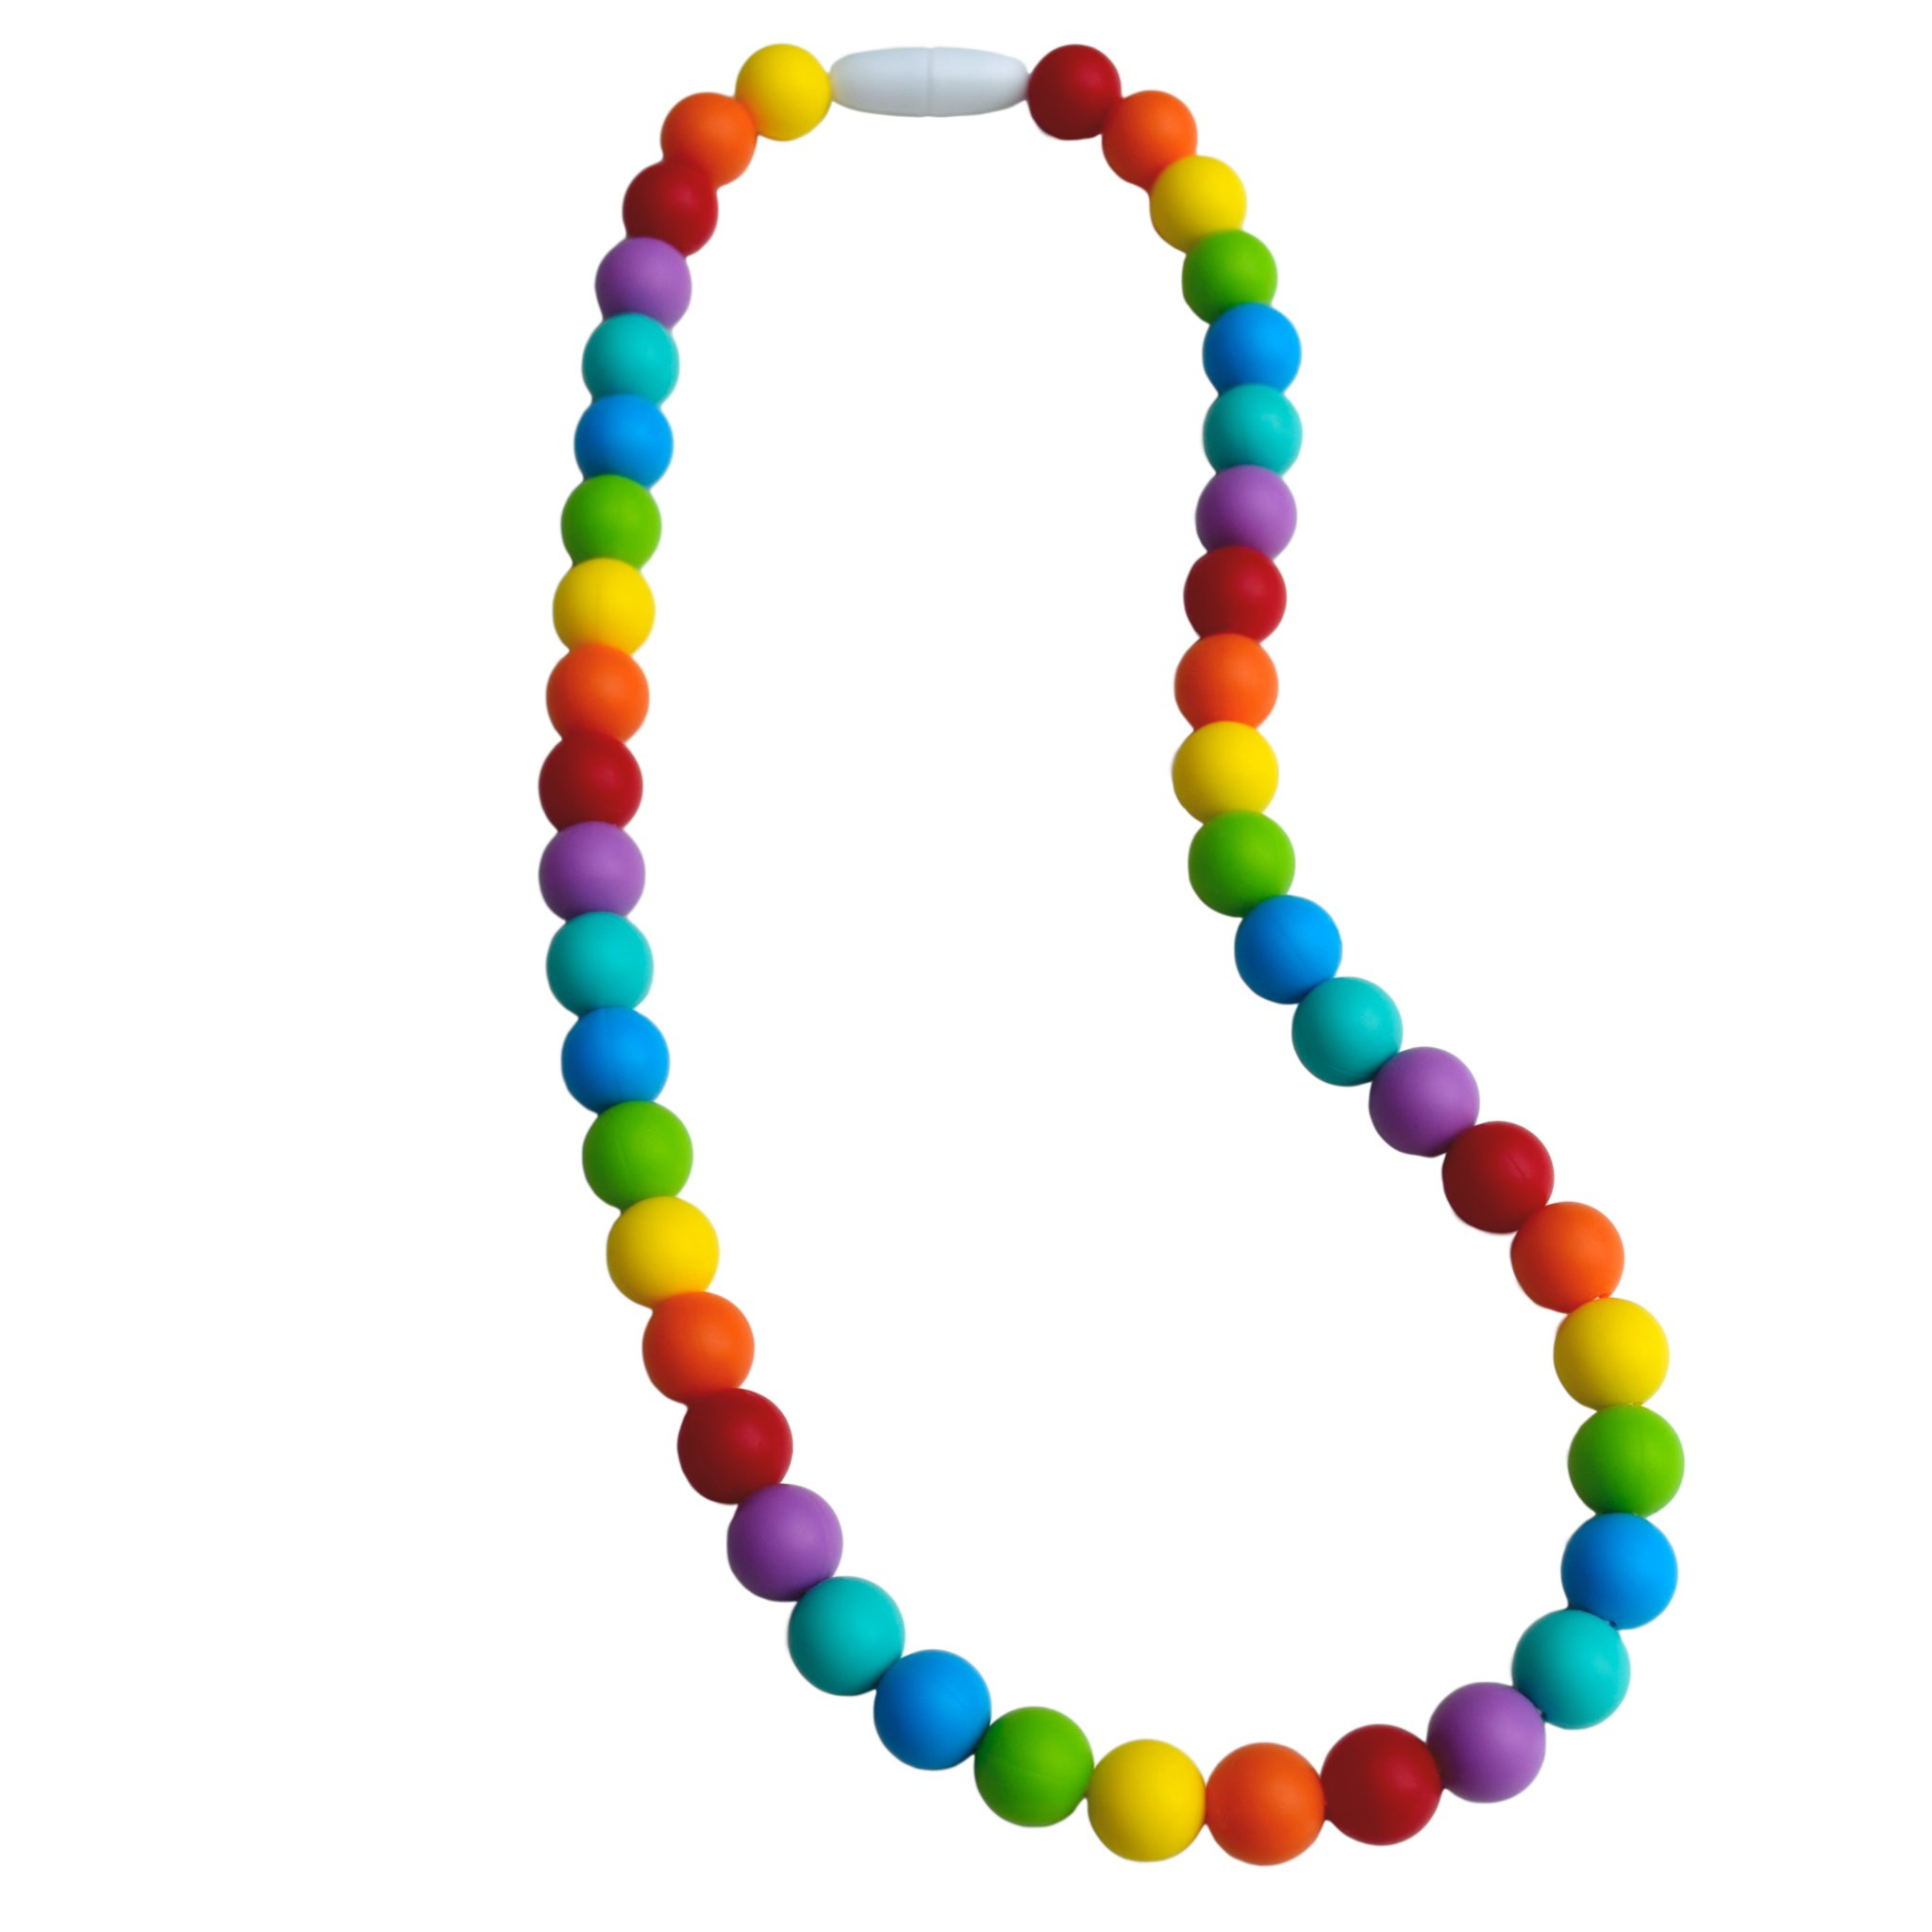 Sensory Oral Motor Aide Chewelry Necklace - Chewy Jewelry for Sensory-Focused Kids with Autism or Special Needs - Calms Kids and Reduces Biting/Chewing - Rainbow Necklace (No Knots) by Munchables Chewelry